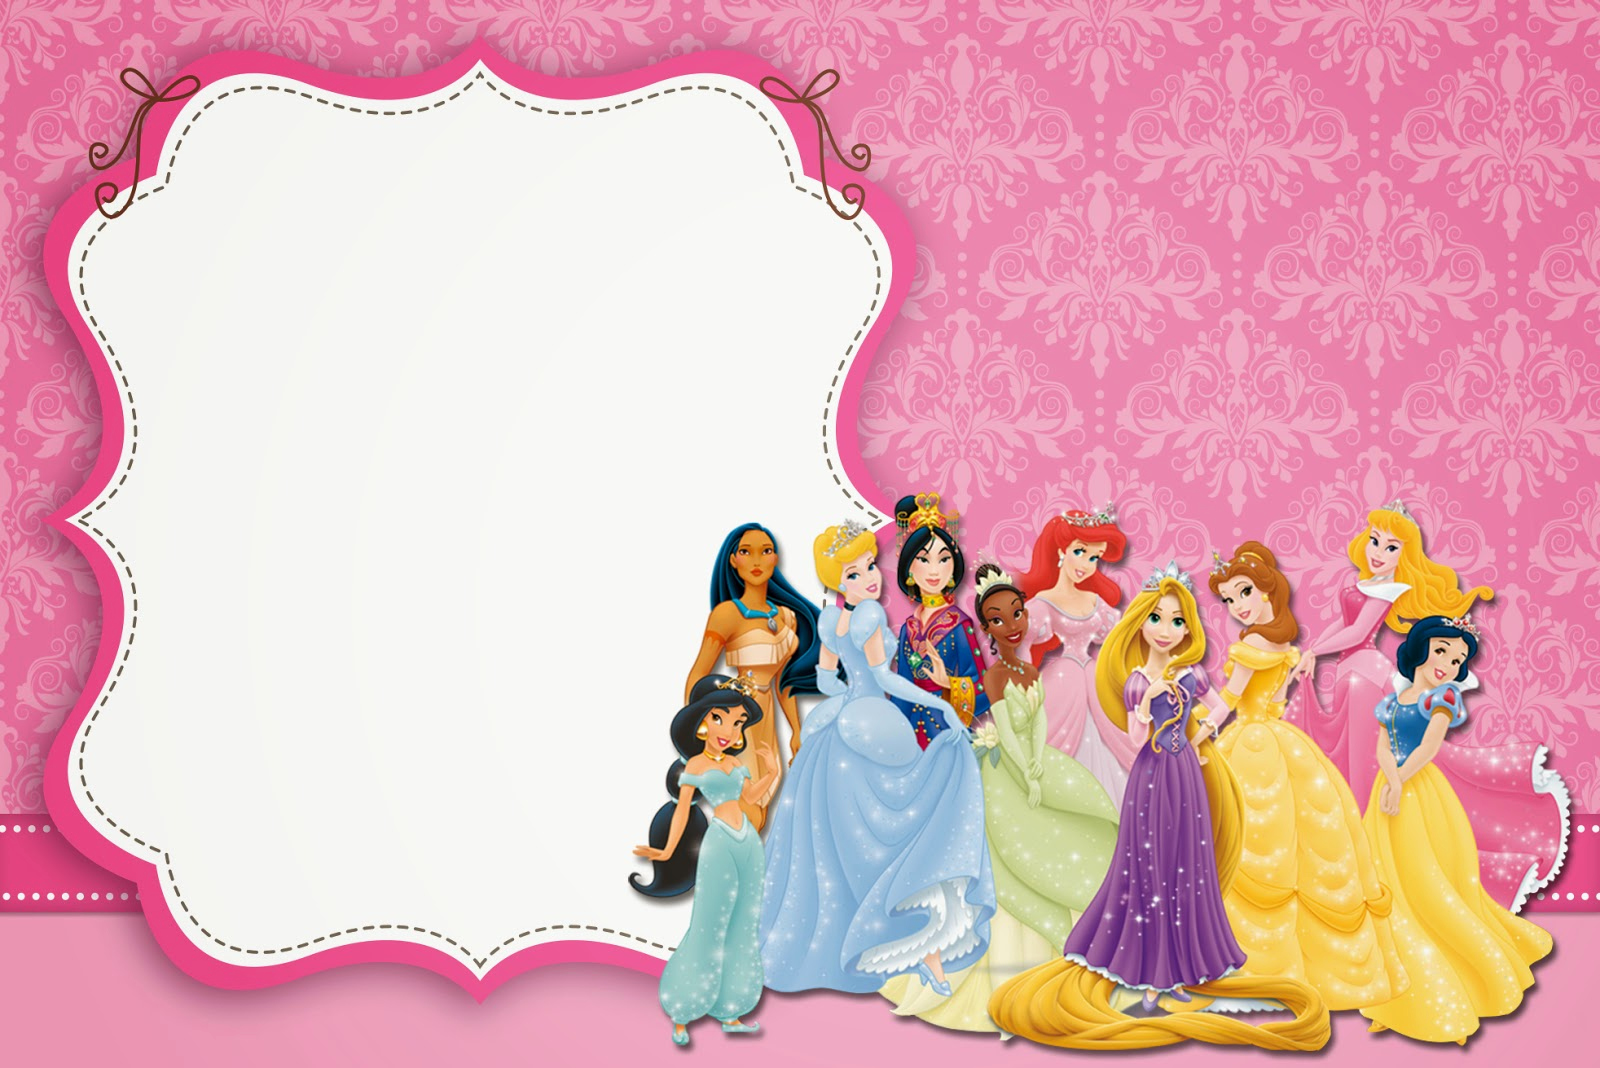 Disney Princess Invitation Template Best Of Disney Princess Party Free Printable Party Invitations